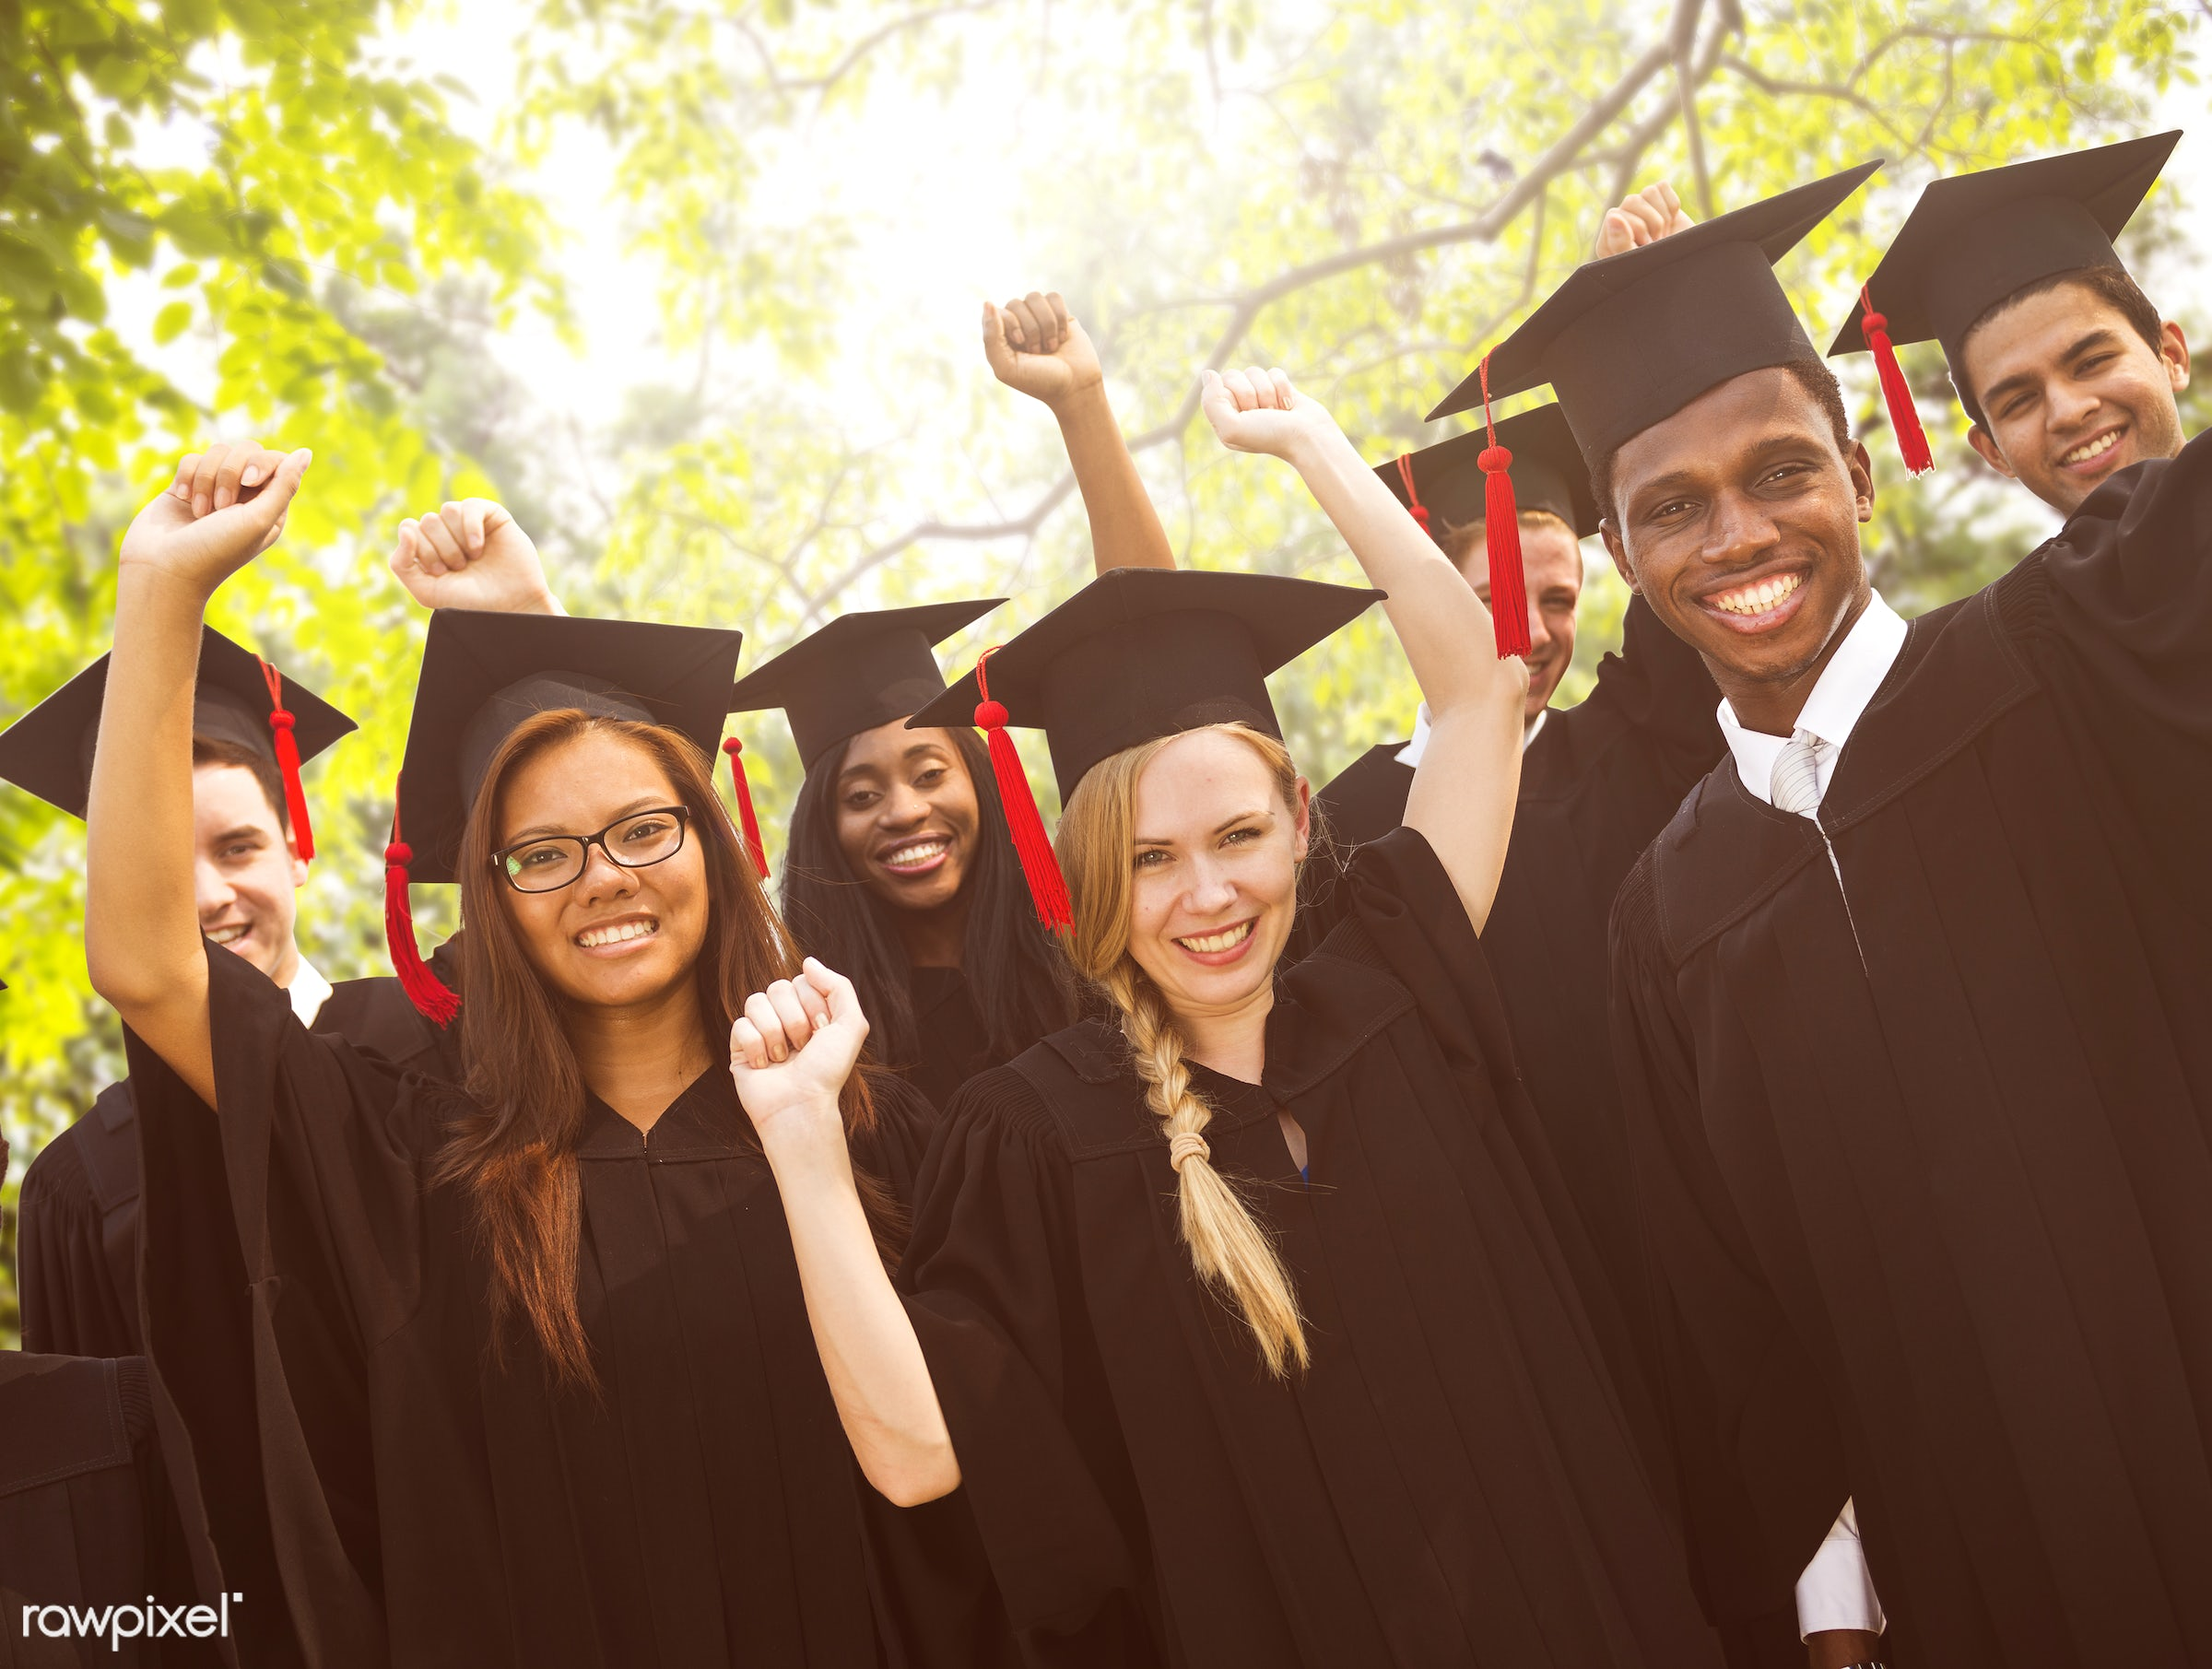 achievement, african descent, arms outstretched, asian ethnicity, cap, celebration, ceremony, certificate, cheerful, college...